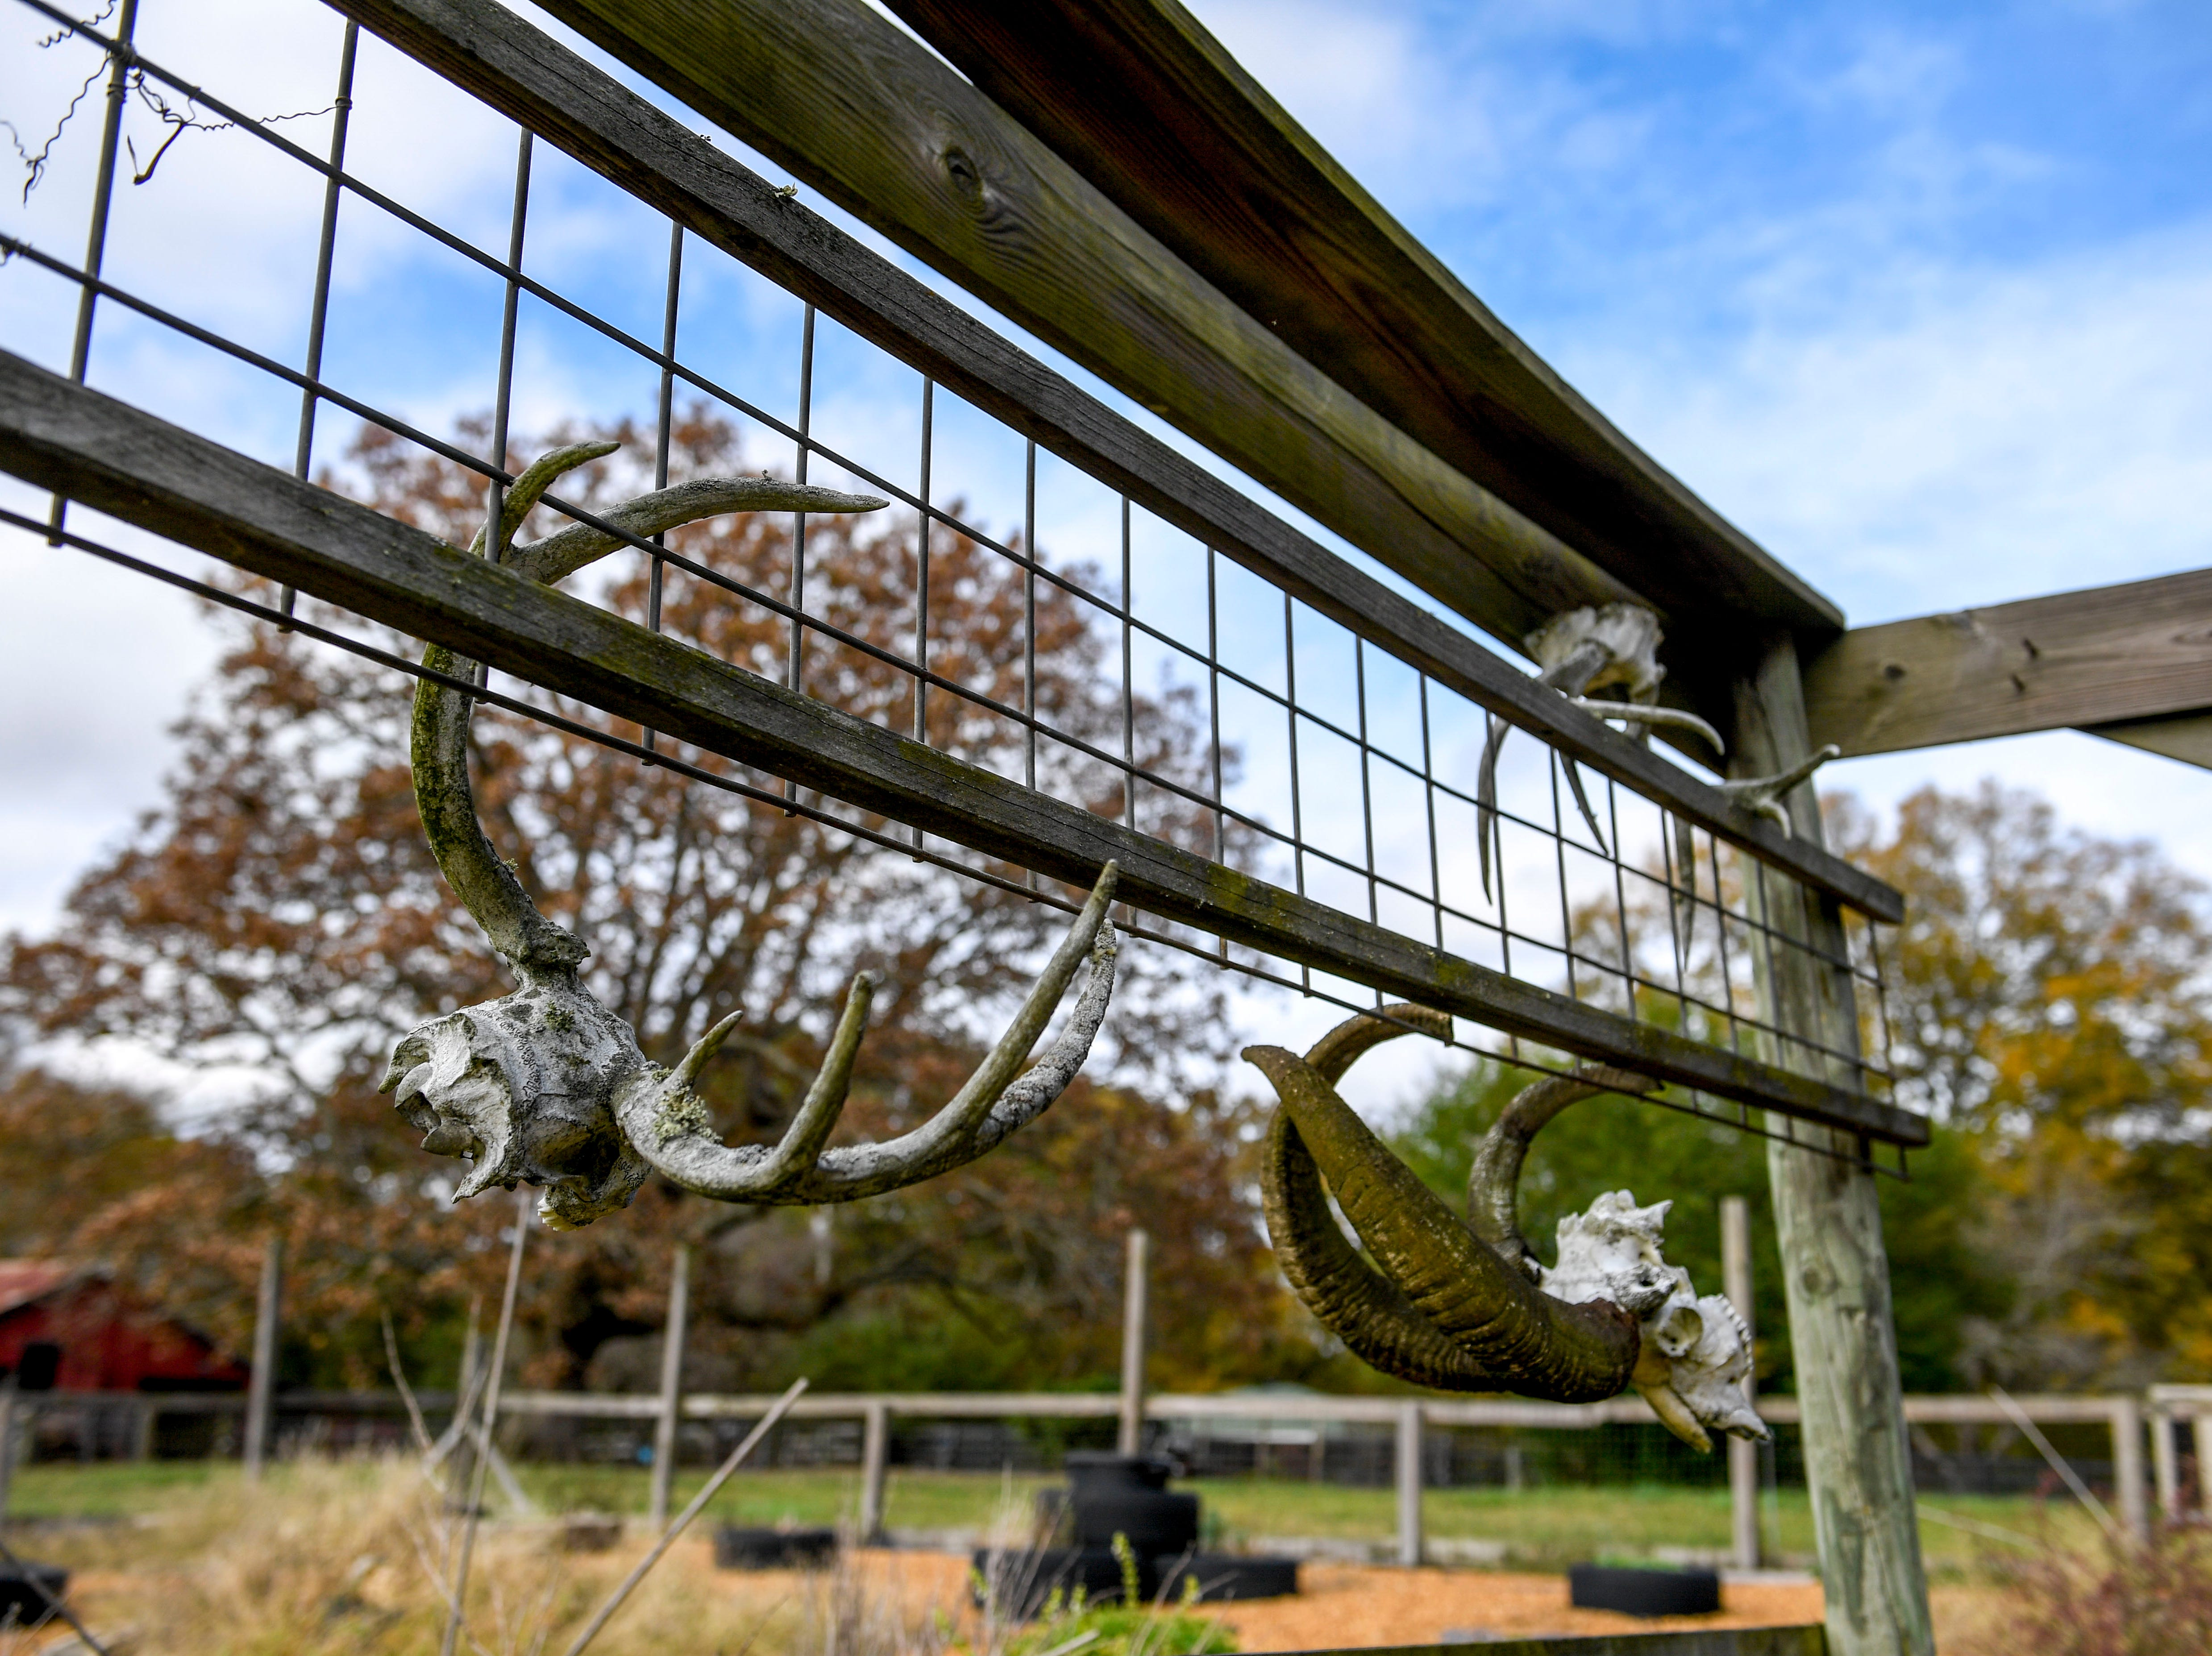 Skulls of past rams hang from the fence of an herb field at Stillwaters Farm in Henderson, Tenn., on Monday, Nov. 5, 2018.